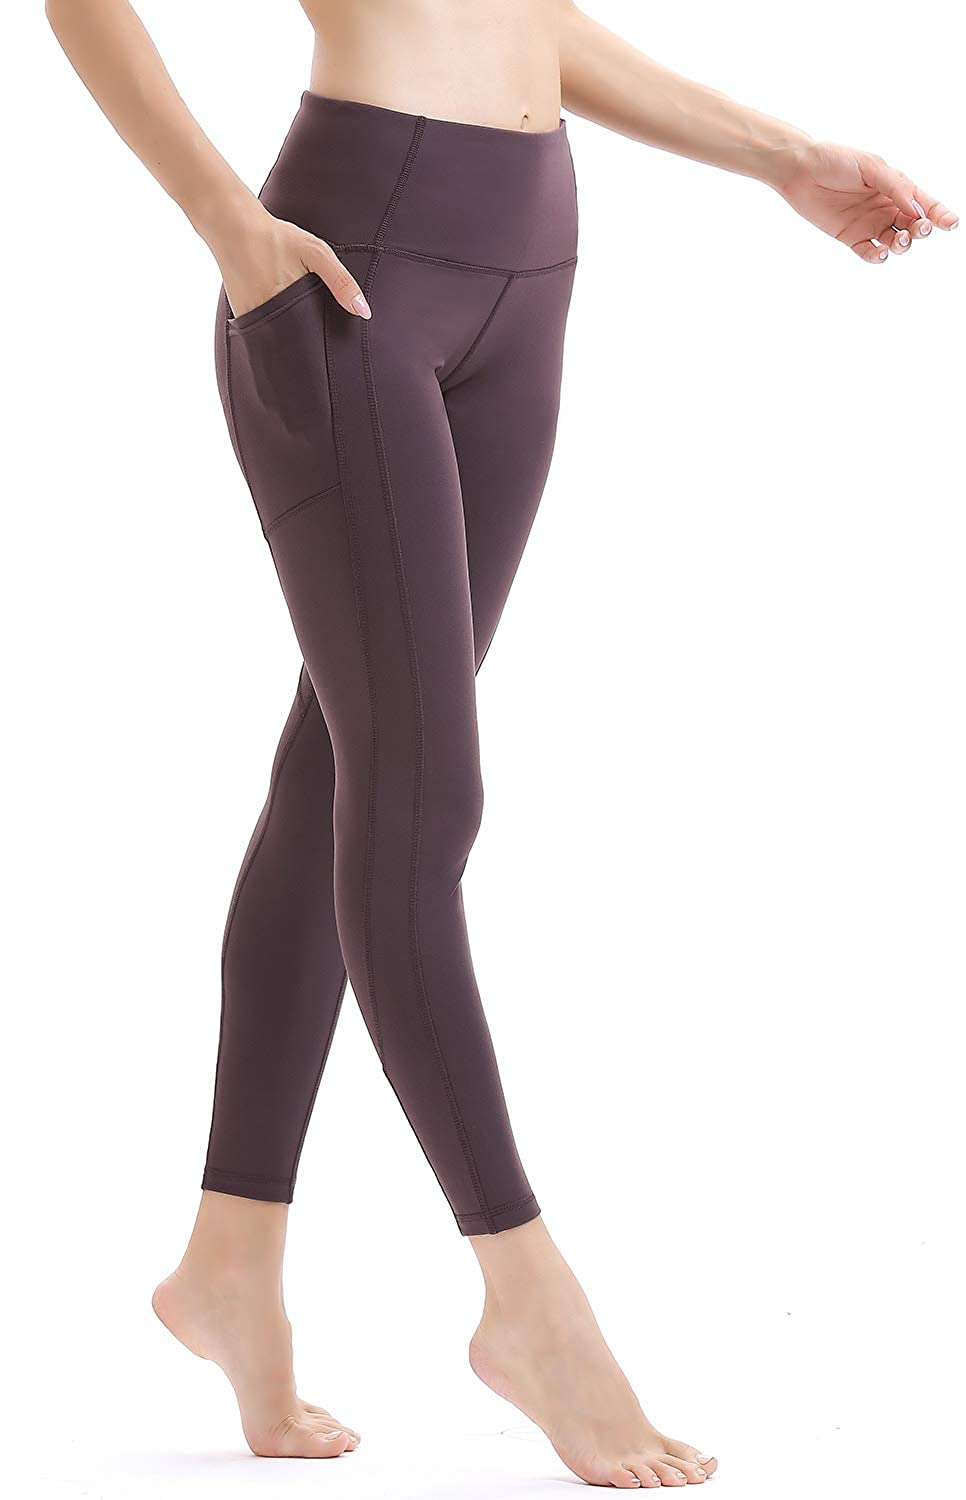 Persit Women's High Waist Yoga Pants 2 Pockets, Non See-Through Tummy Control 4 Way Stretch Yoga Leggings